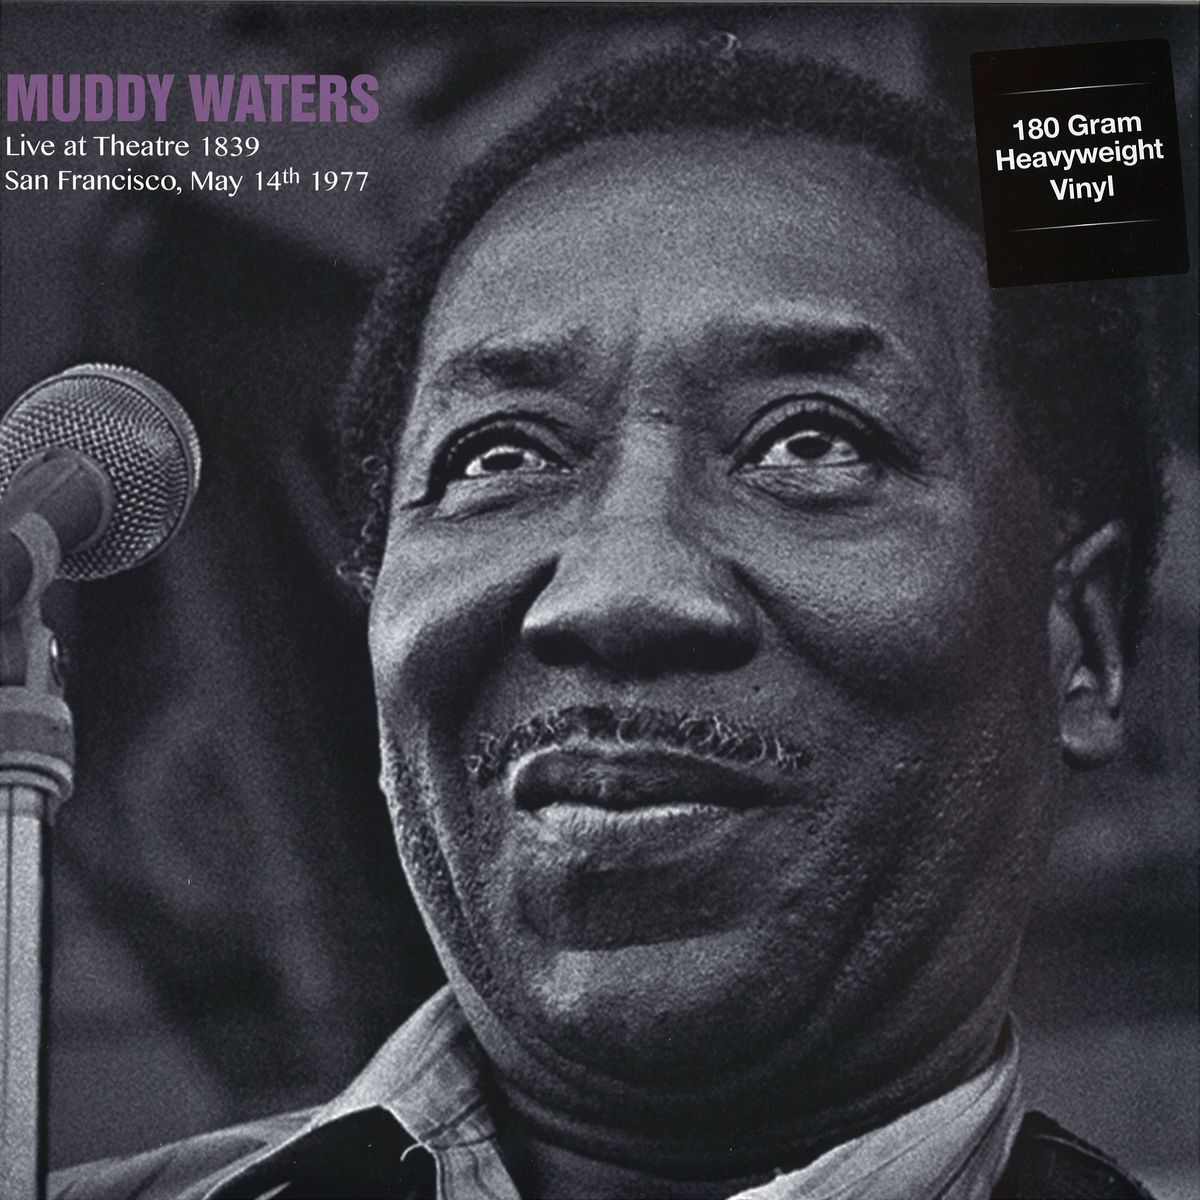 83 best muddy waters images on Pinterest Blues music, Muddy Muddy waters pictures gallery